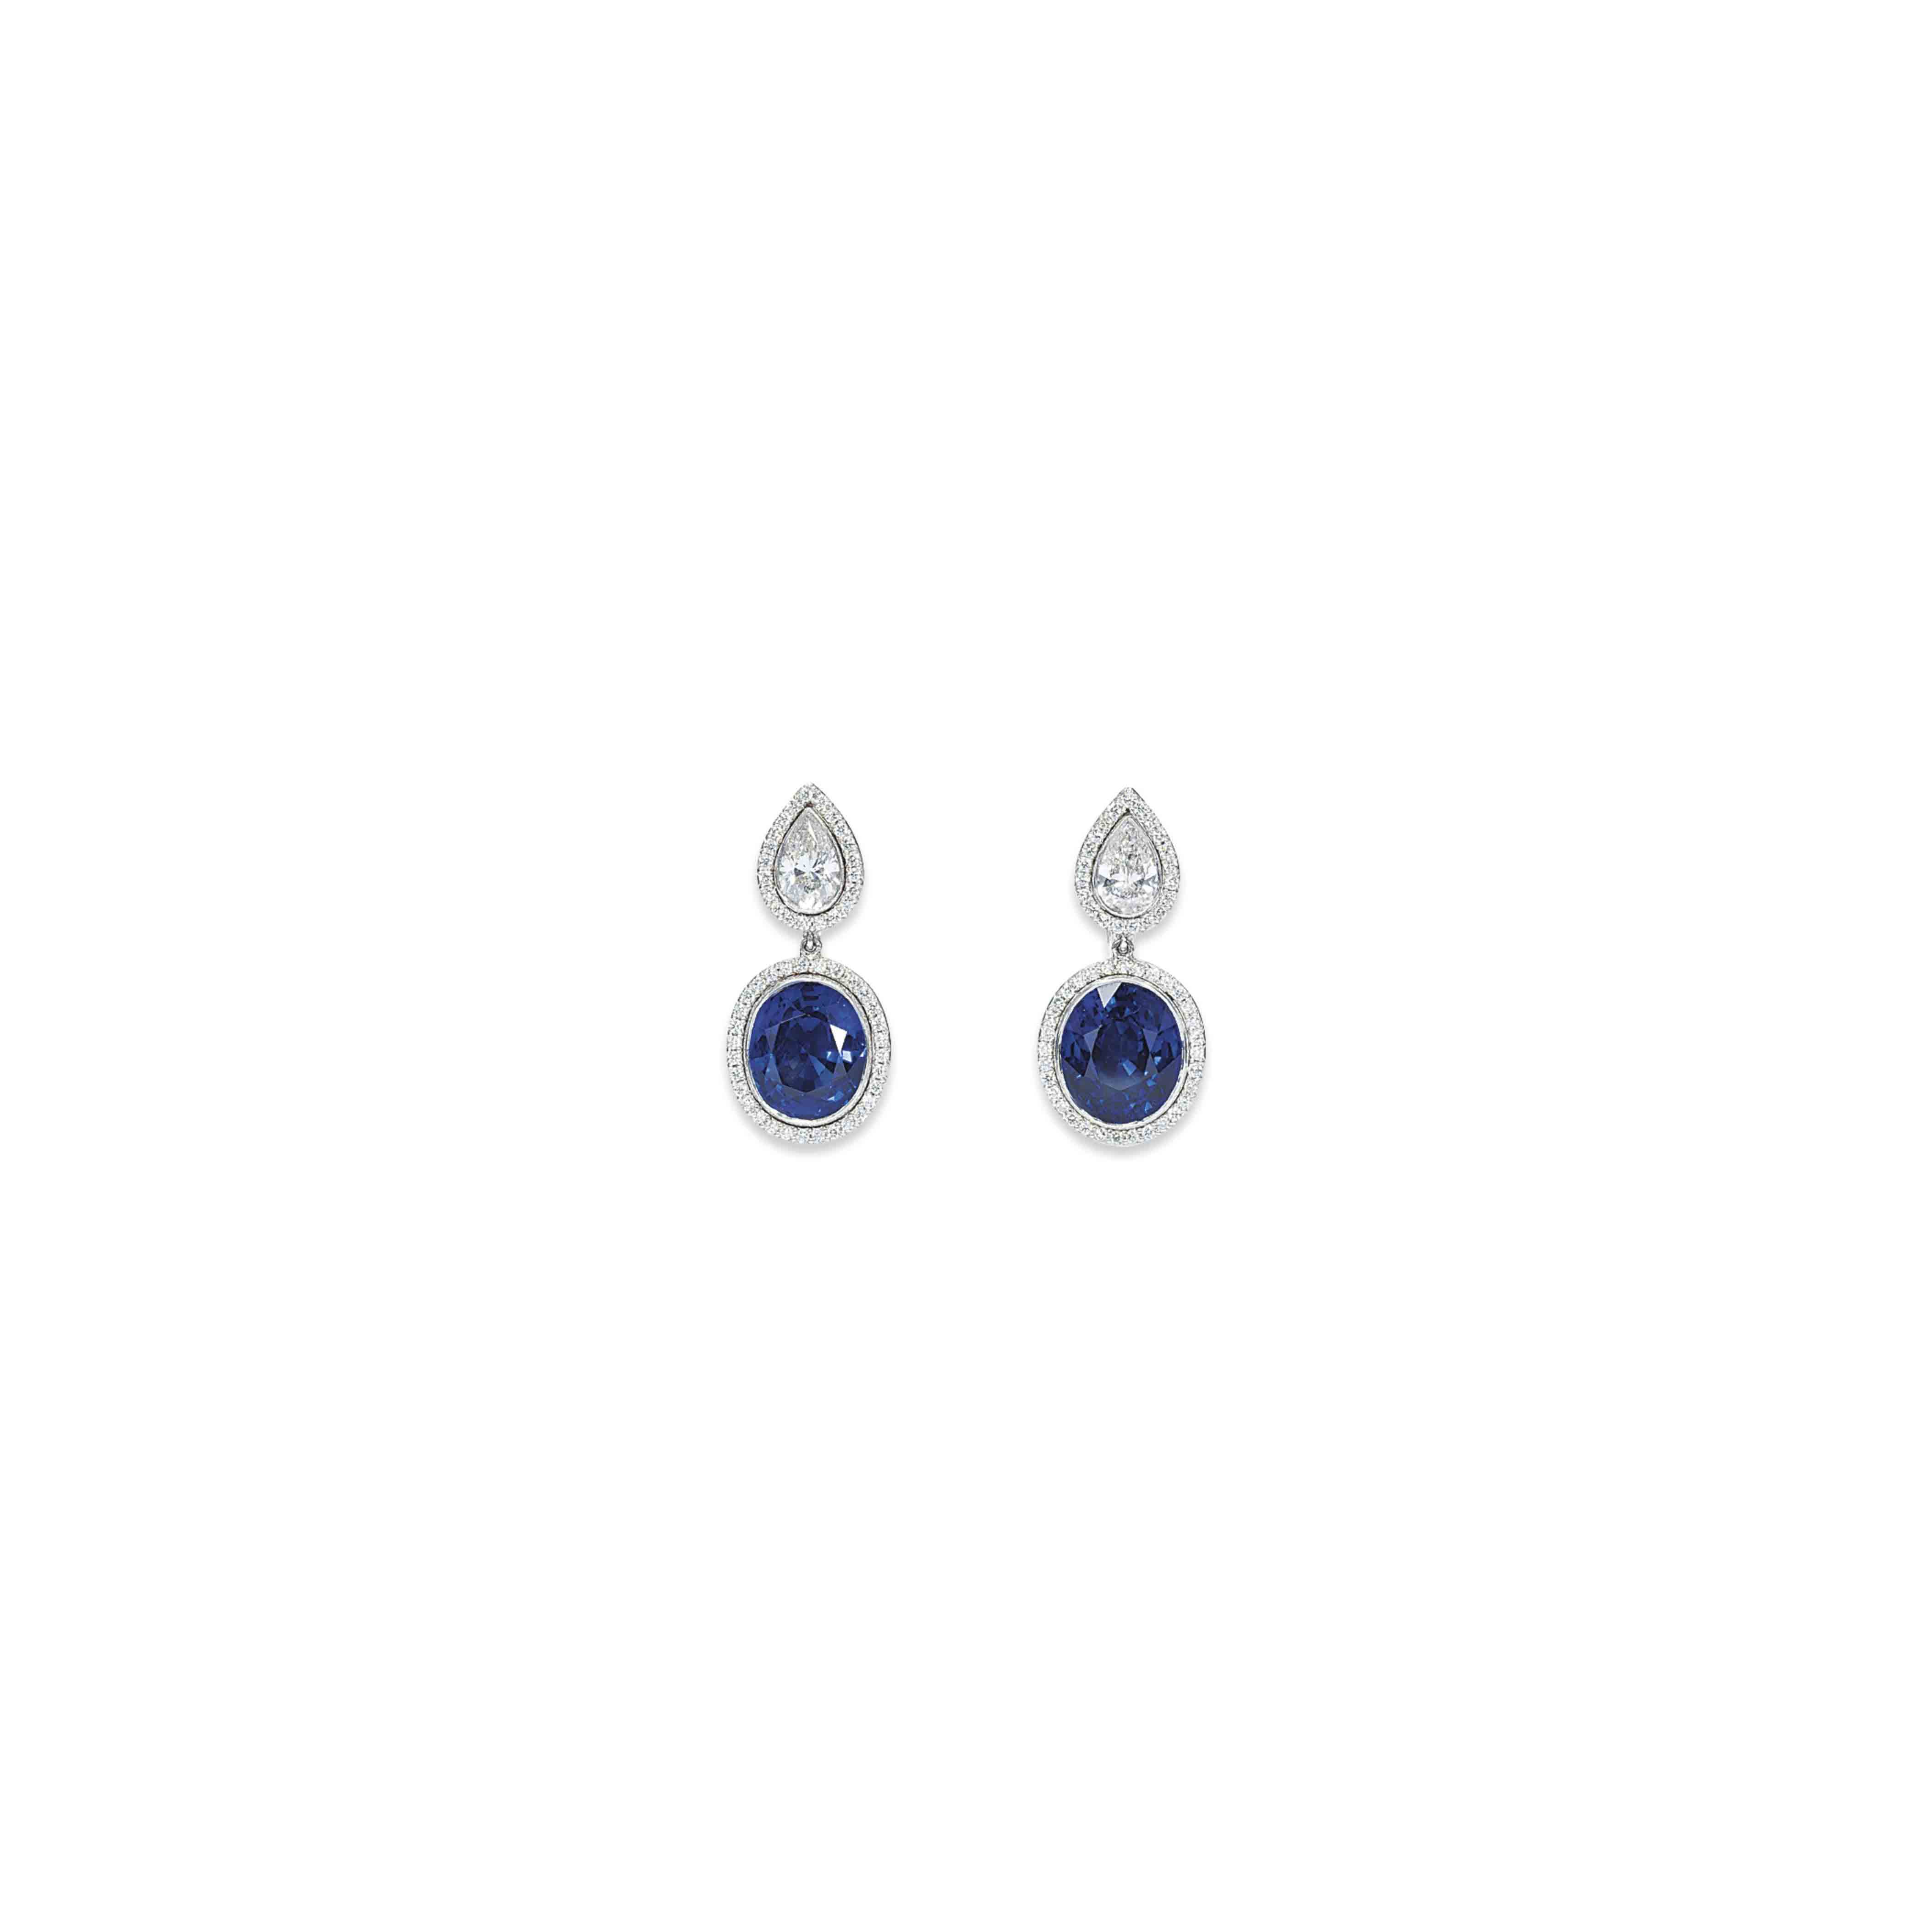 A PAIR OF SAPPHIRE AND DIAMOND EARRINGS, BY ADLER